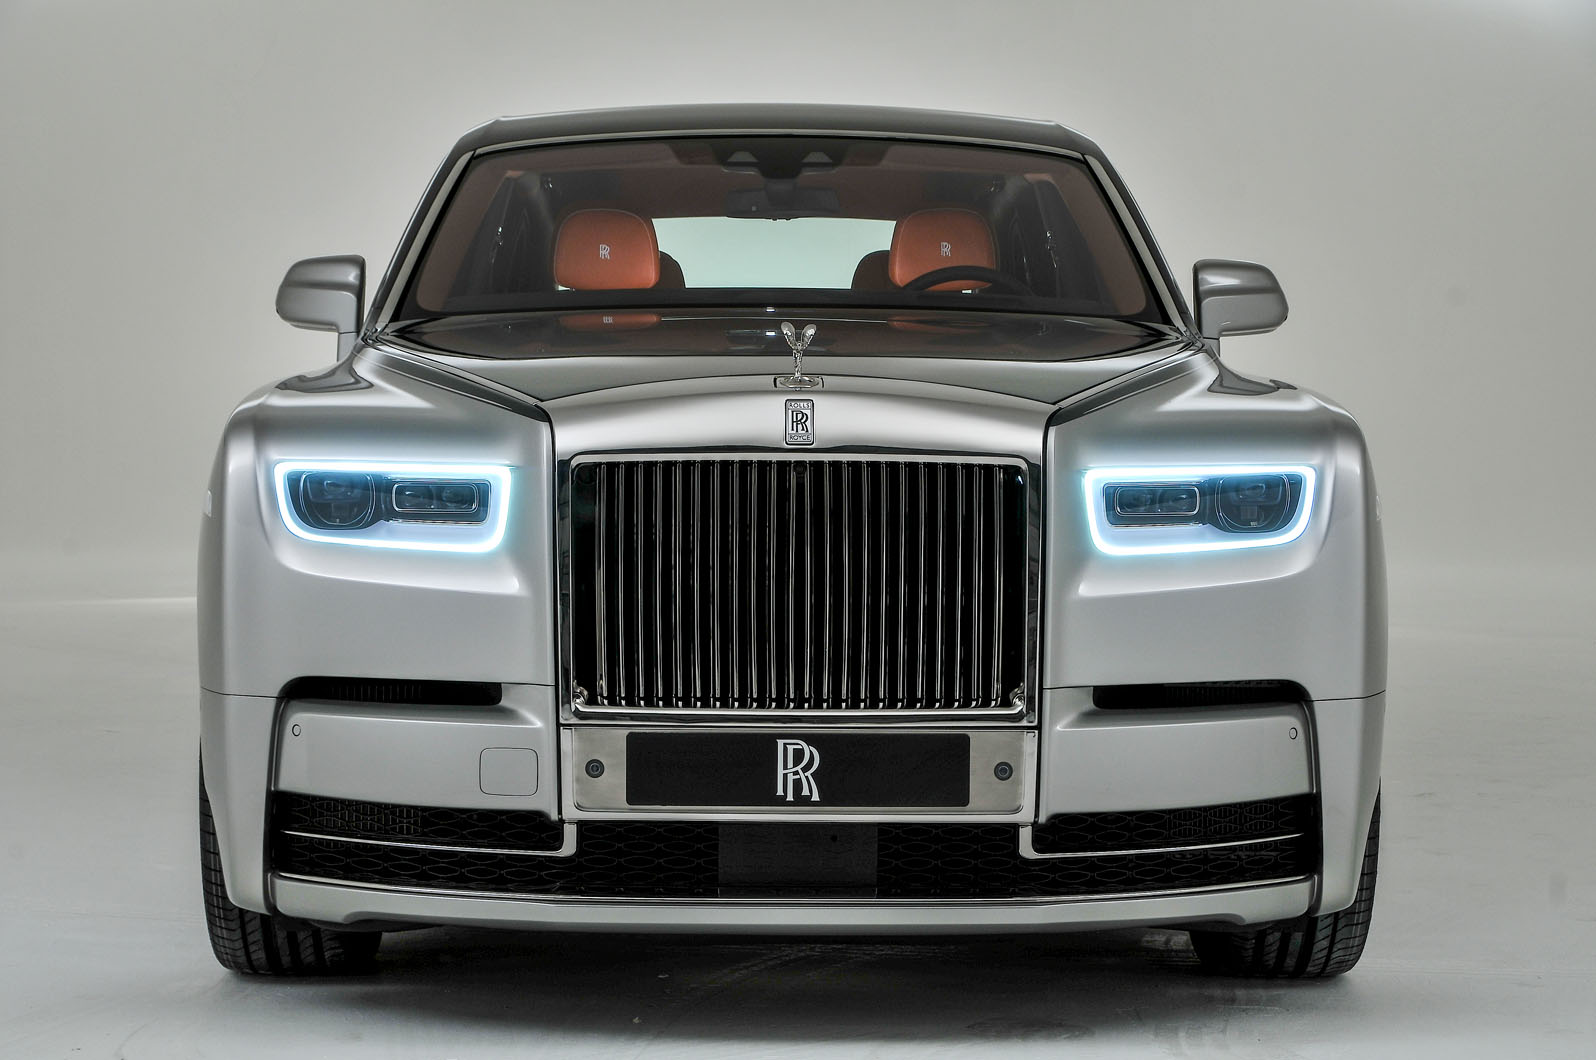 new release from rolls royce it 39 s the new rolls royce phantom. Black Bedroom Furniture Sets. Home Design Ideas